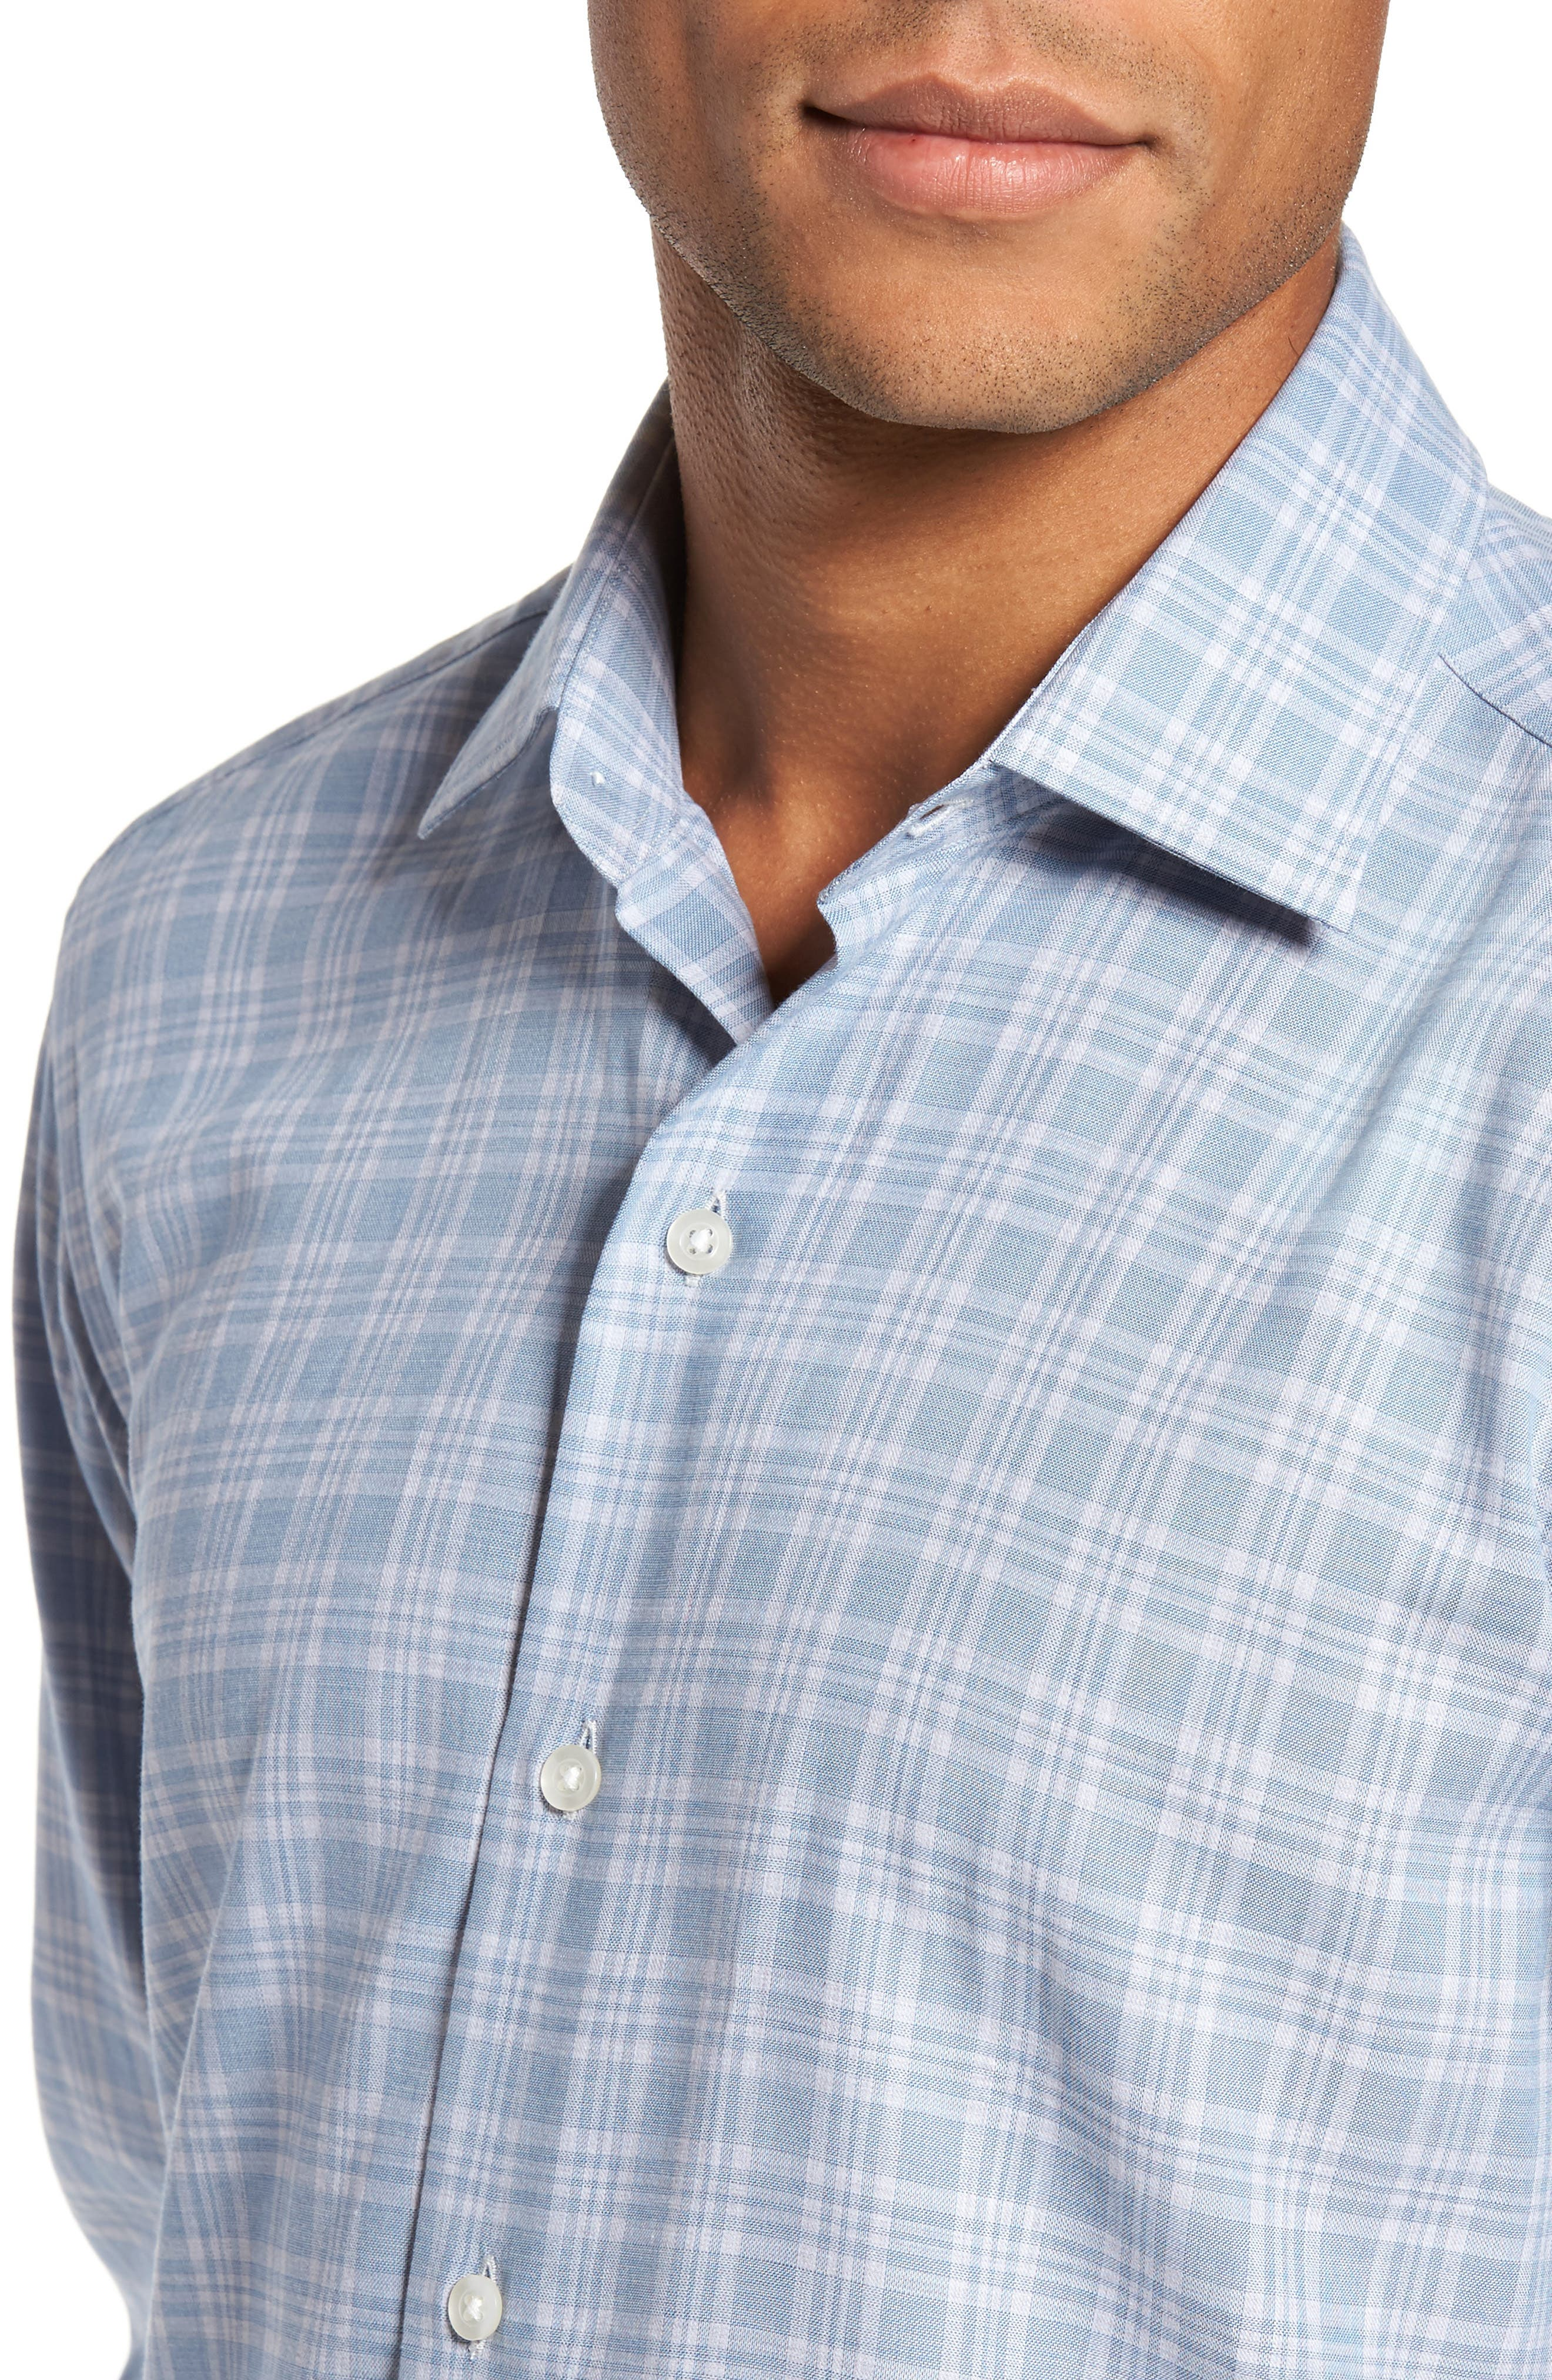 Trim Fit Check Sport Shirt,                             Alternate thumbnail 4, color,                             Blue